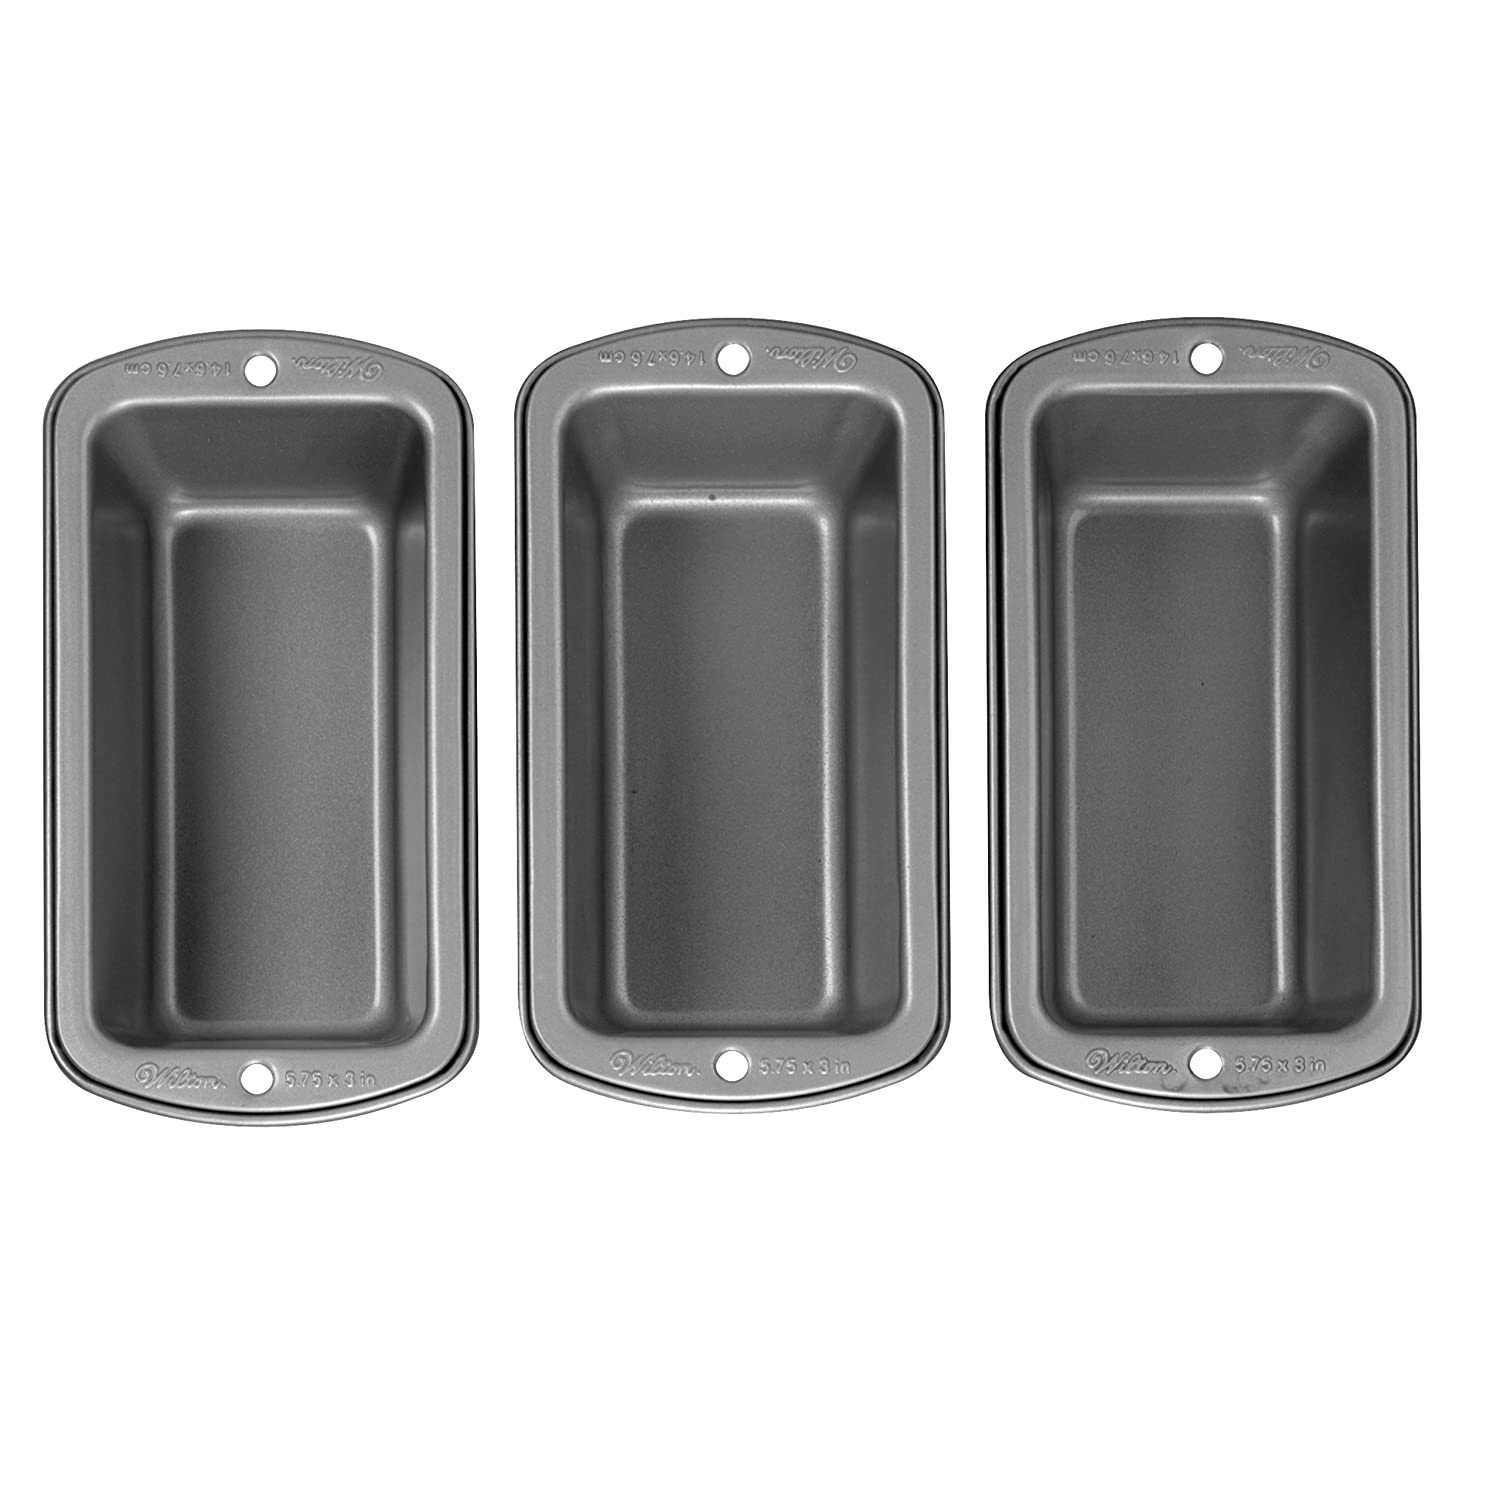 Wilton Recipe Right Non-Stick Mini Loaf Pan Set, 3-Piece 2105-989